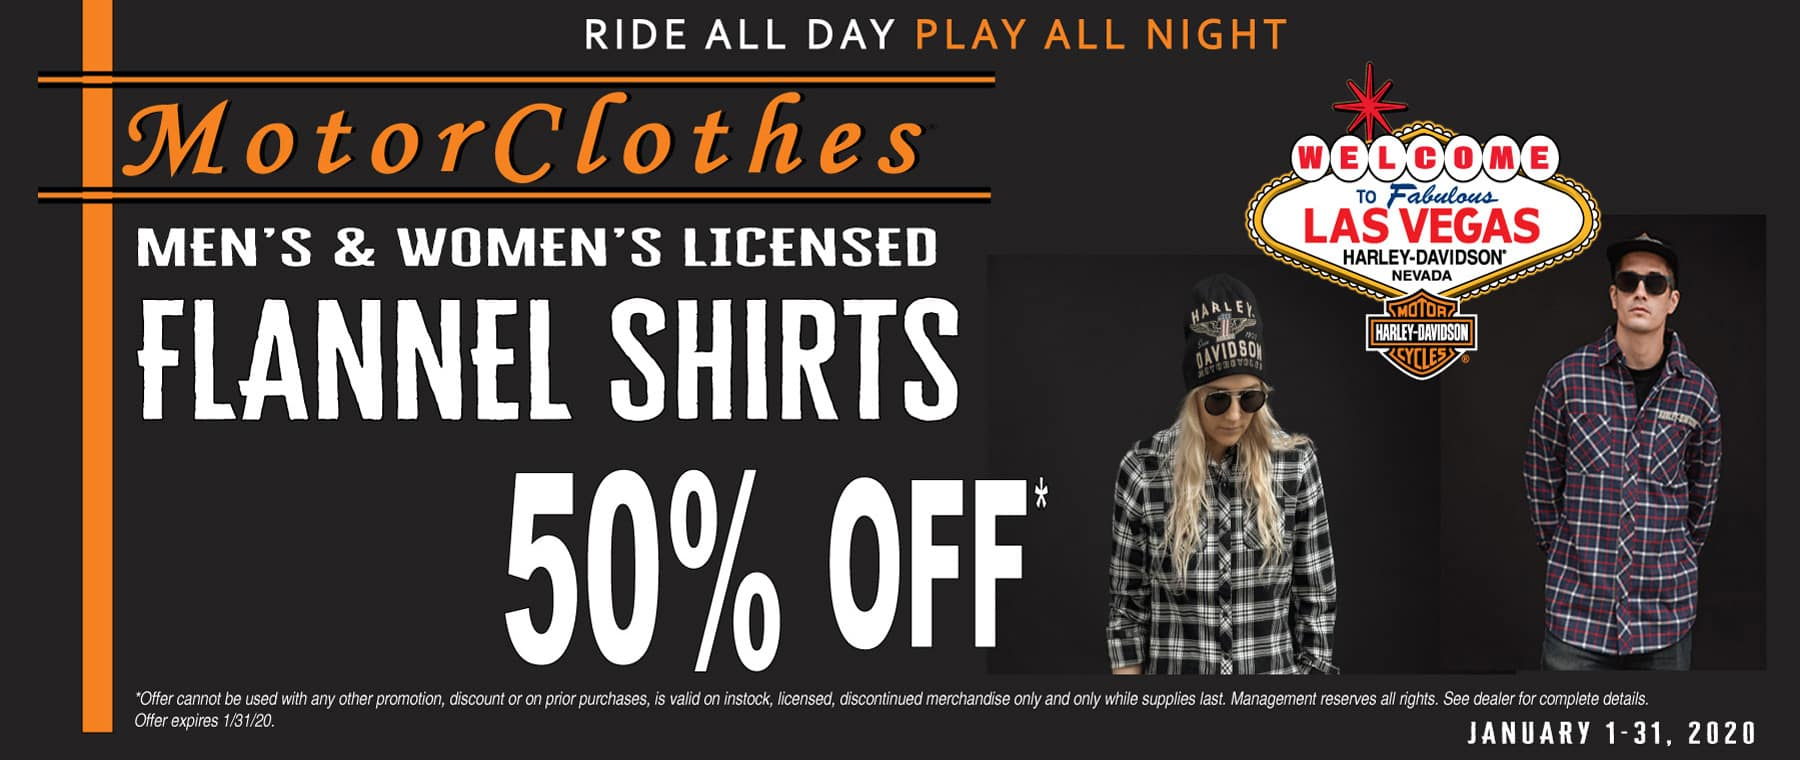 MotorClothes Men's & Women's Flannel Shirts 50% Off